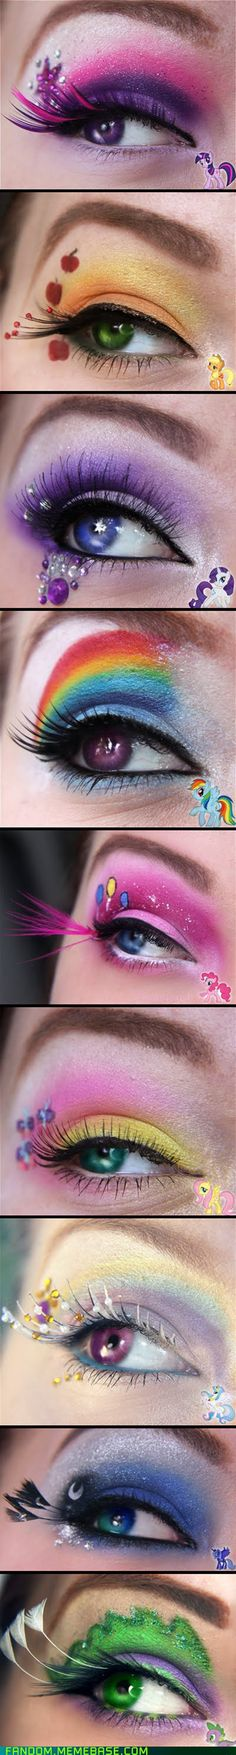 My little pony make up